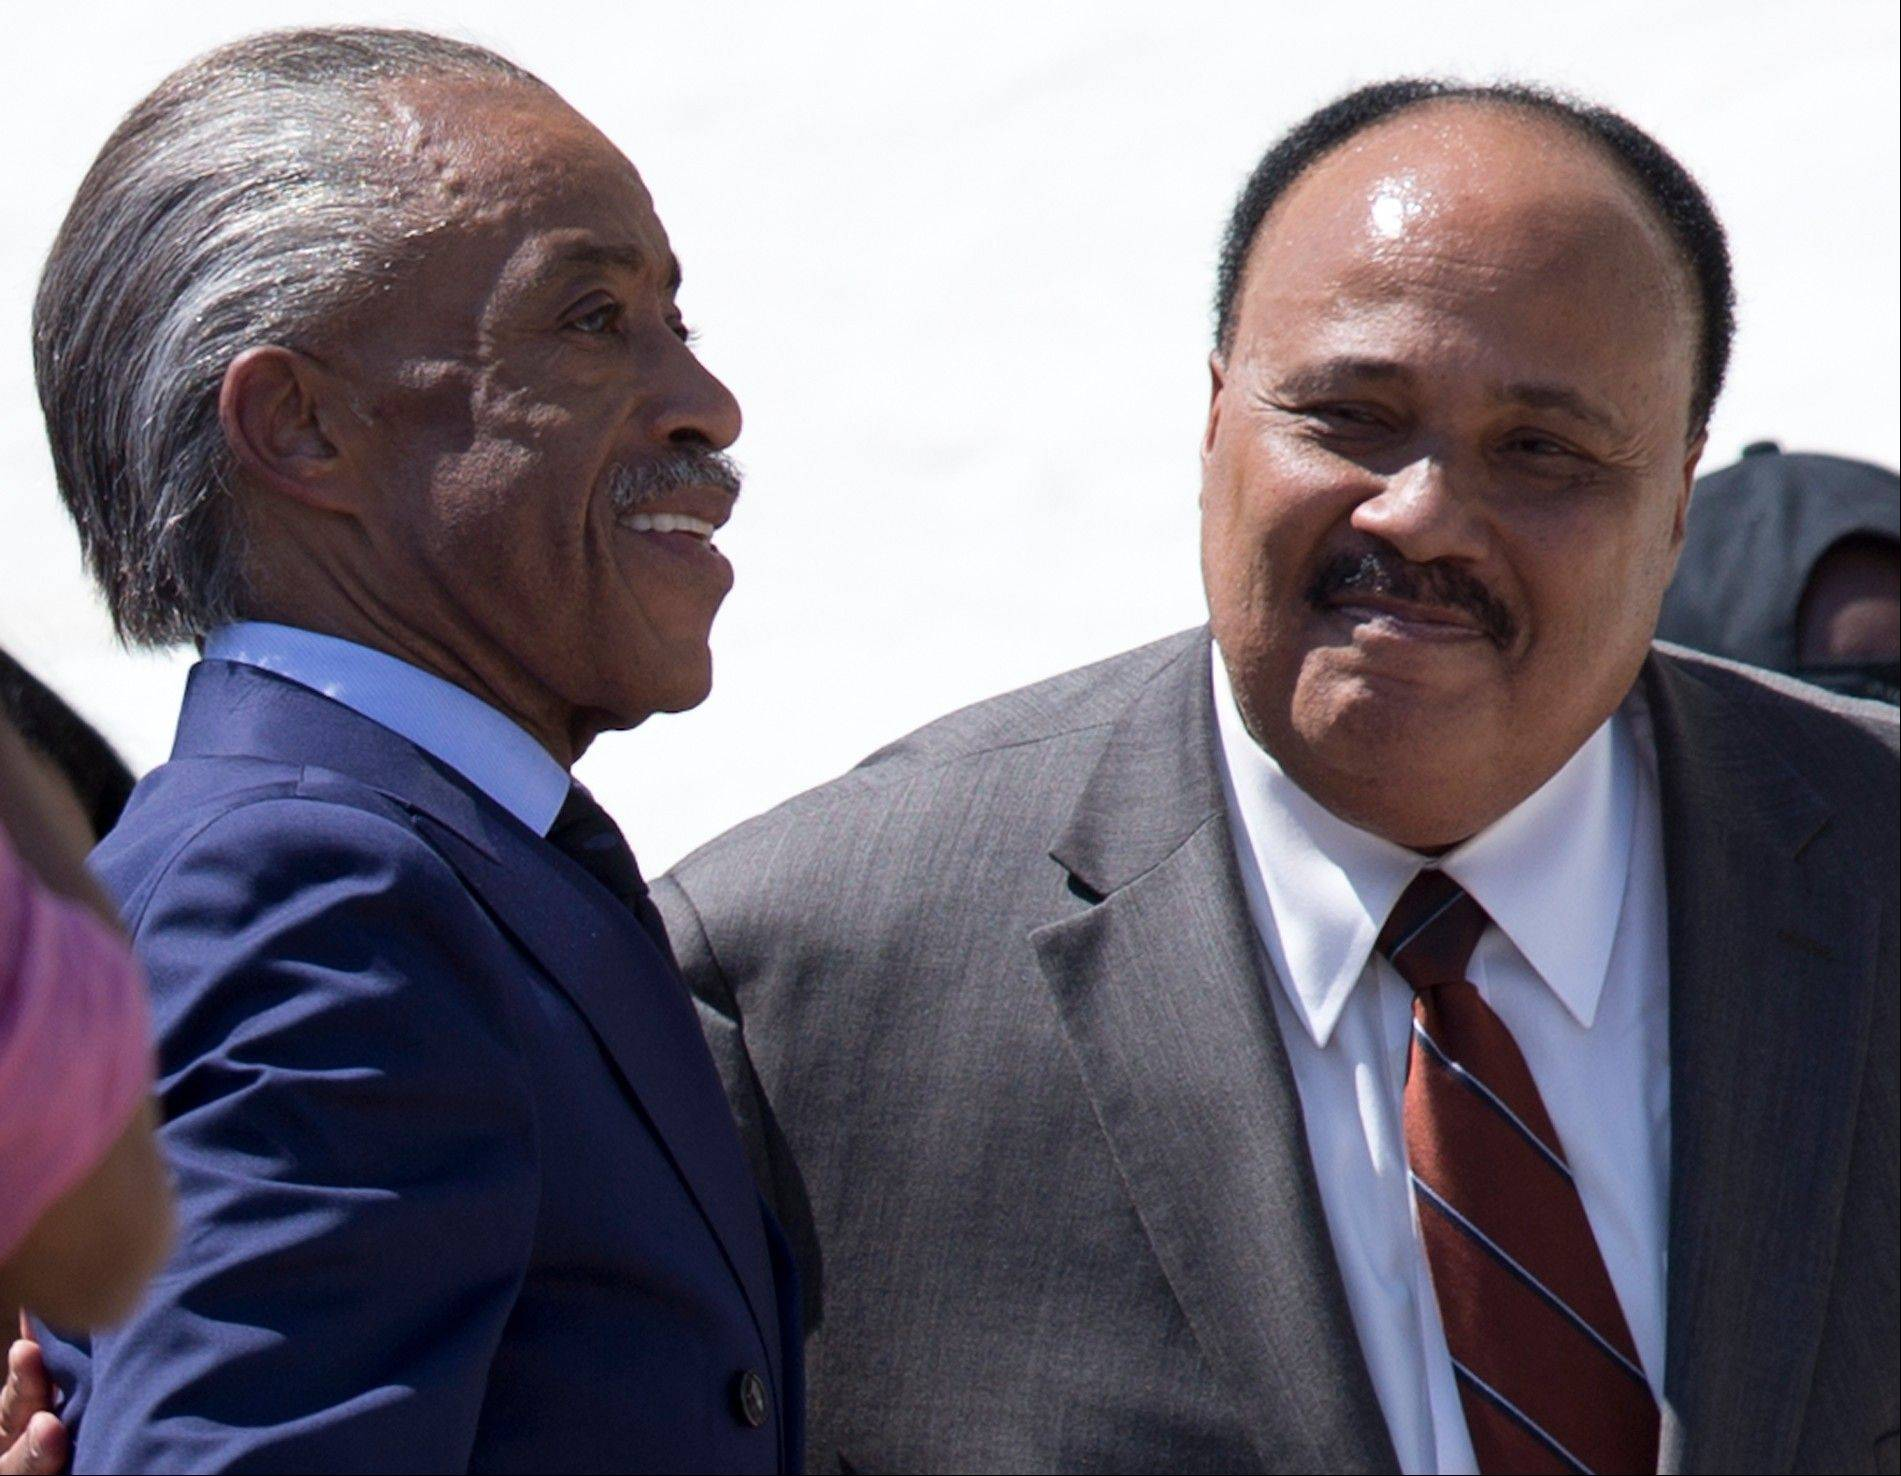 Rev. Al Sharpton, left, and Martin Luther King III stand together during an event to commemorate the 50th anniversary of the 1963 March on Washington at the Lincoln Memorial, Saturday, Aug. 24, 2013, in Washington. The eldest son of Dr. Martin Luther King Jr. says blacks can rightfully celebrate his father�s life and work with pride, but much more must be accomplished.